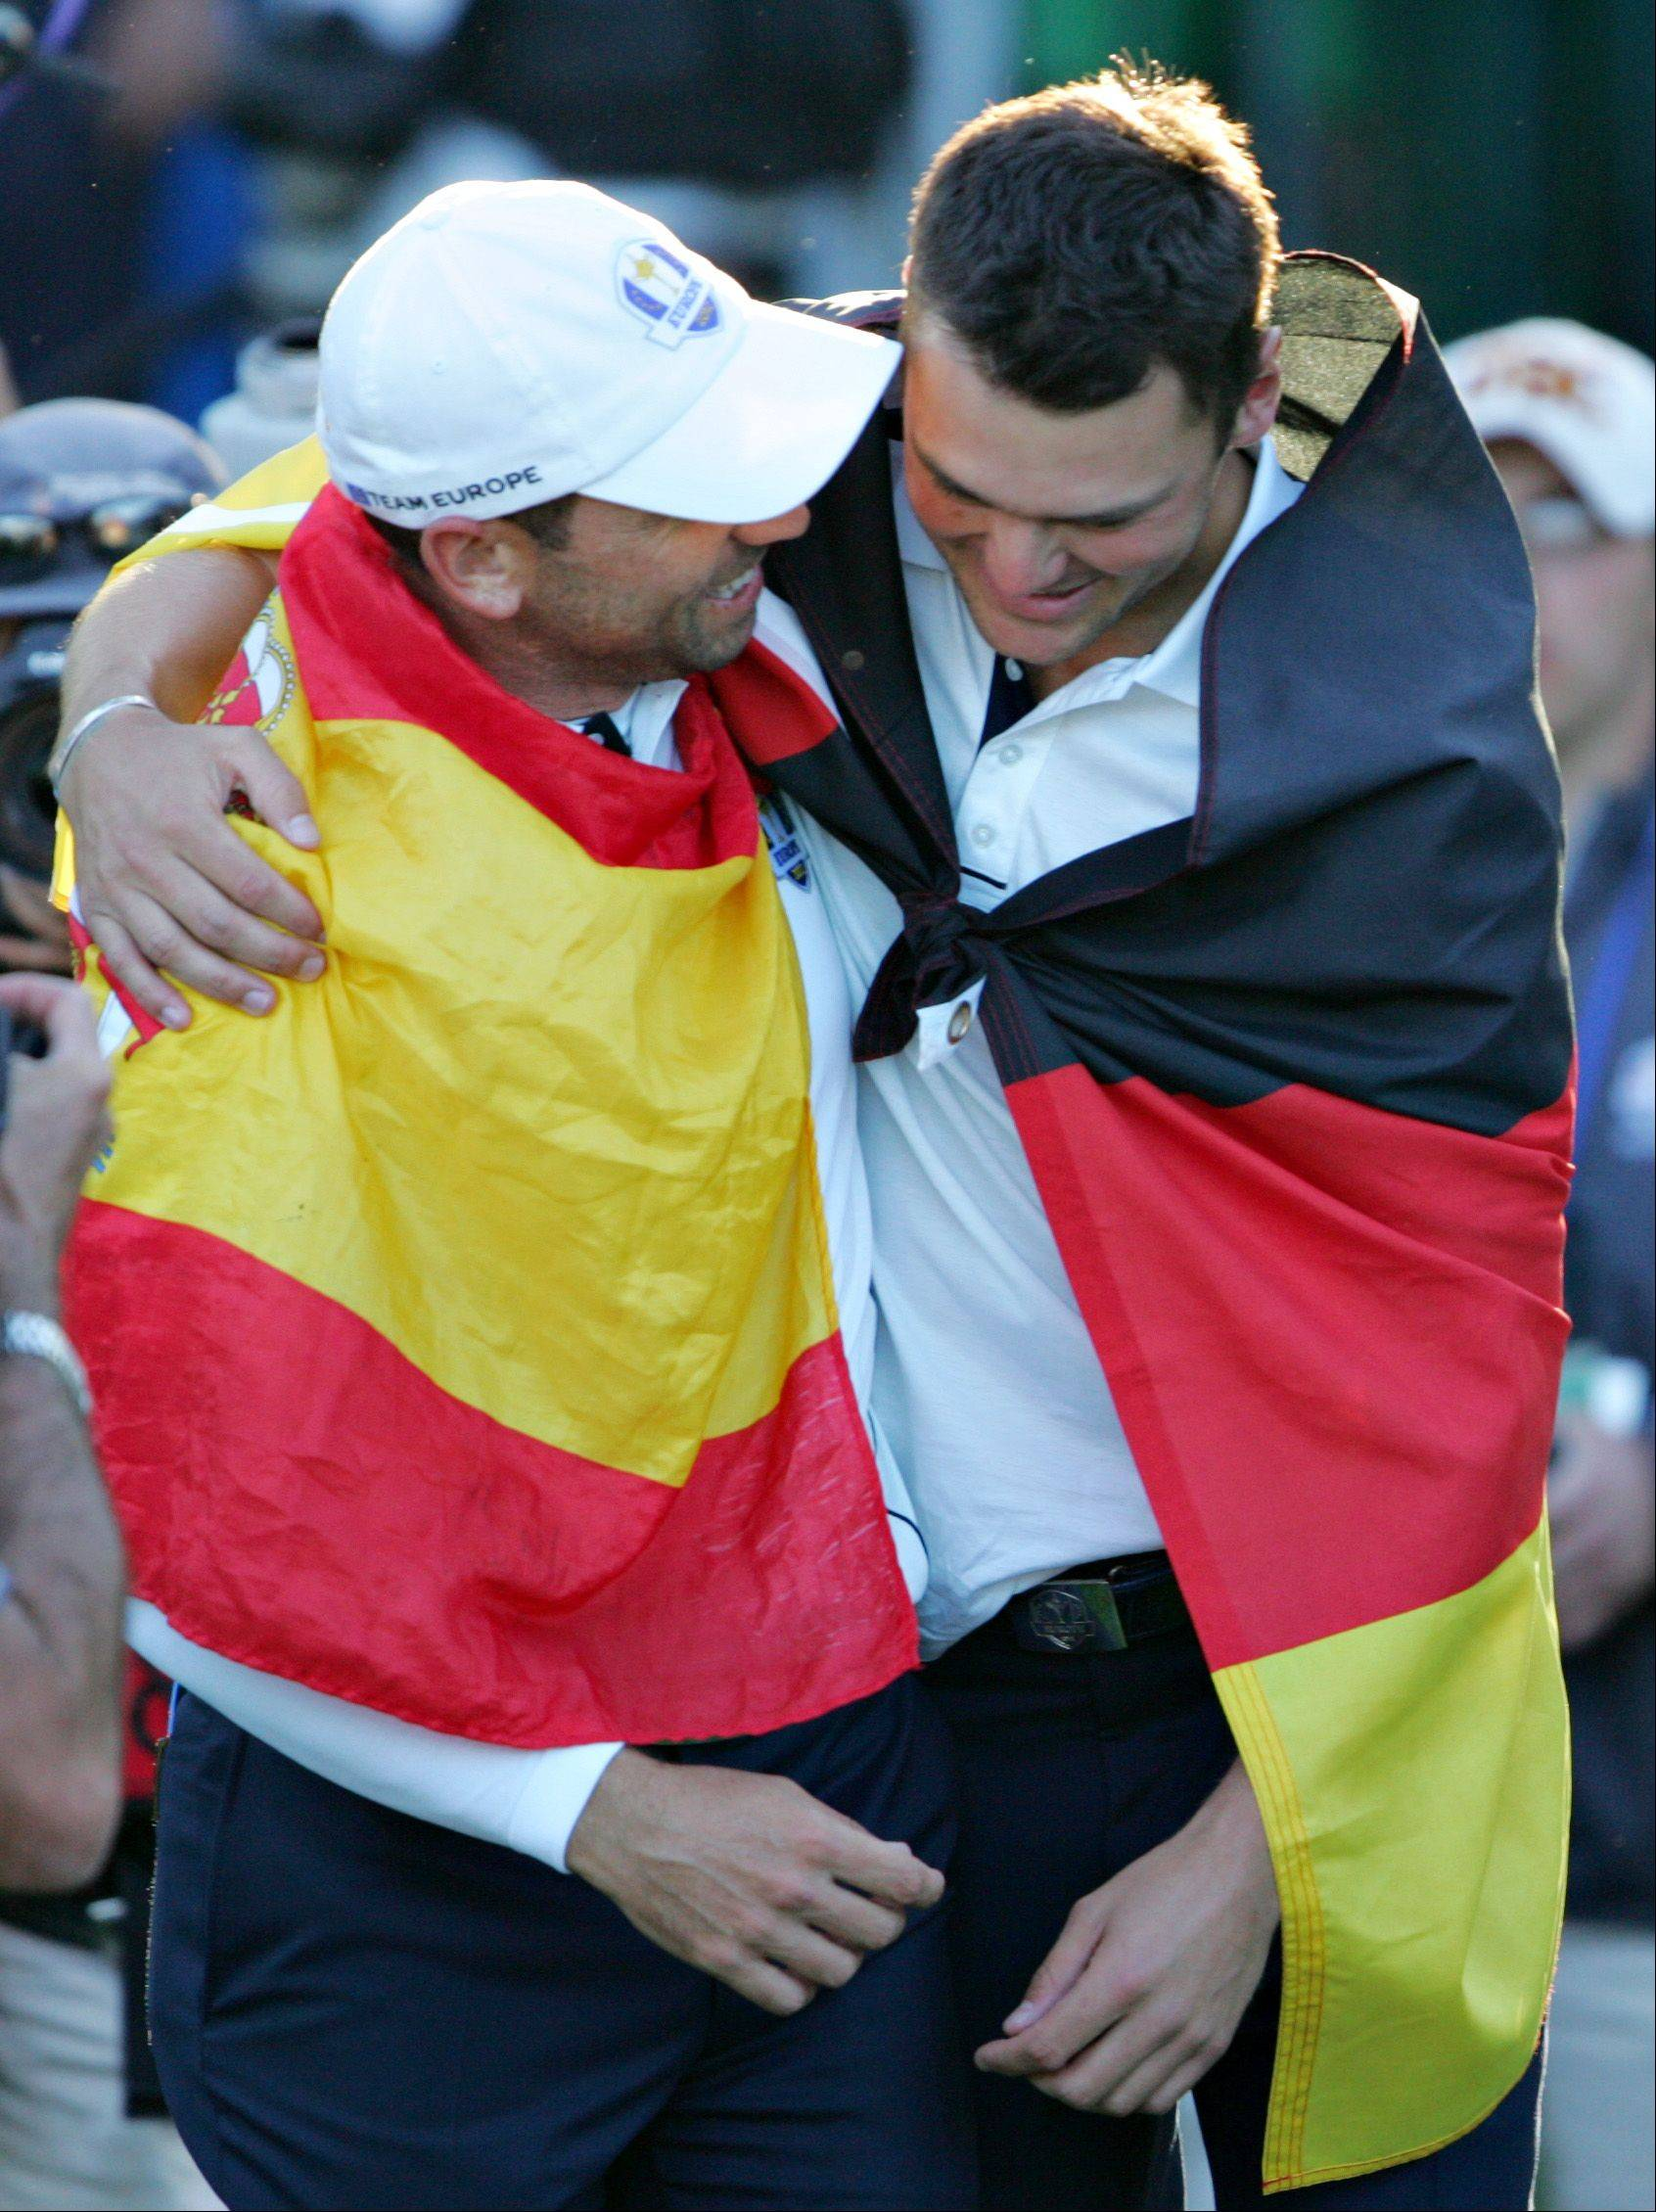 European teammates Sergio Garcia, left, and Martin Kaymer celebrate after their team's win Sunday in Medinah.